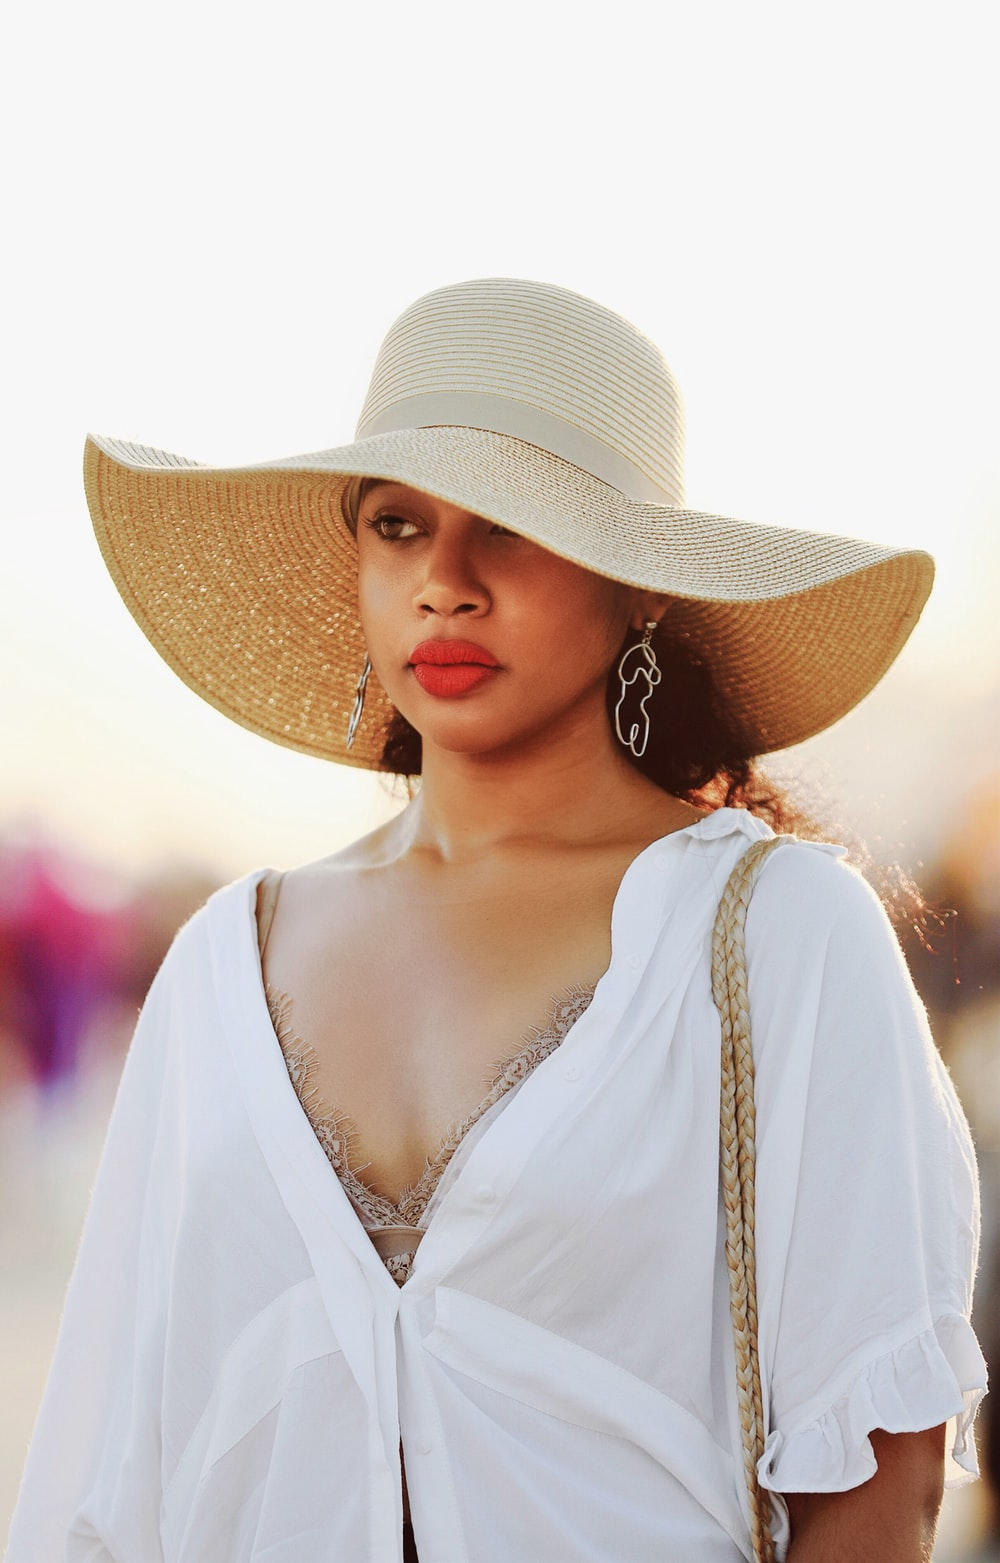 woman wearing brown straw hat and white top